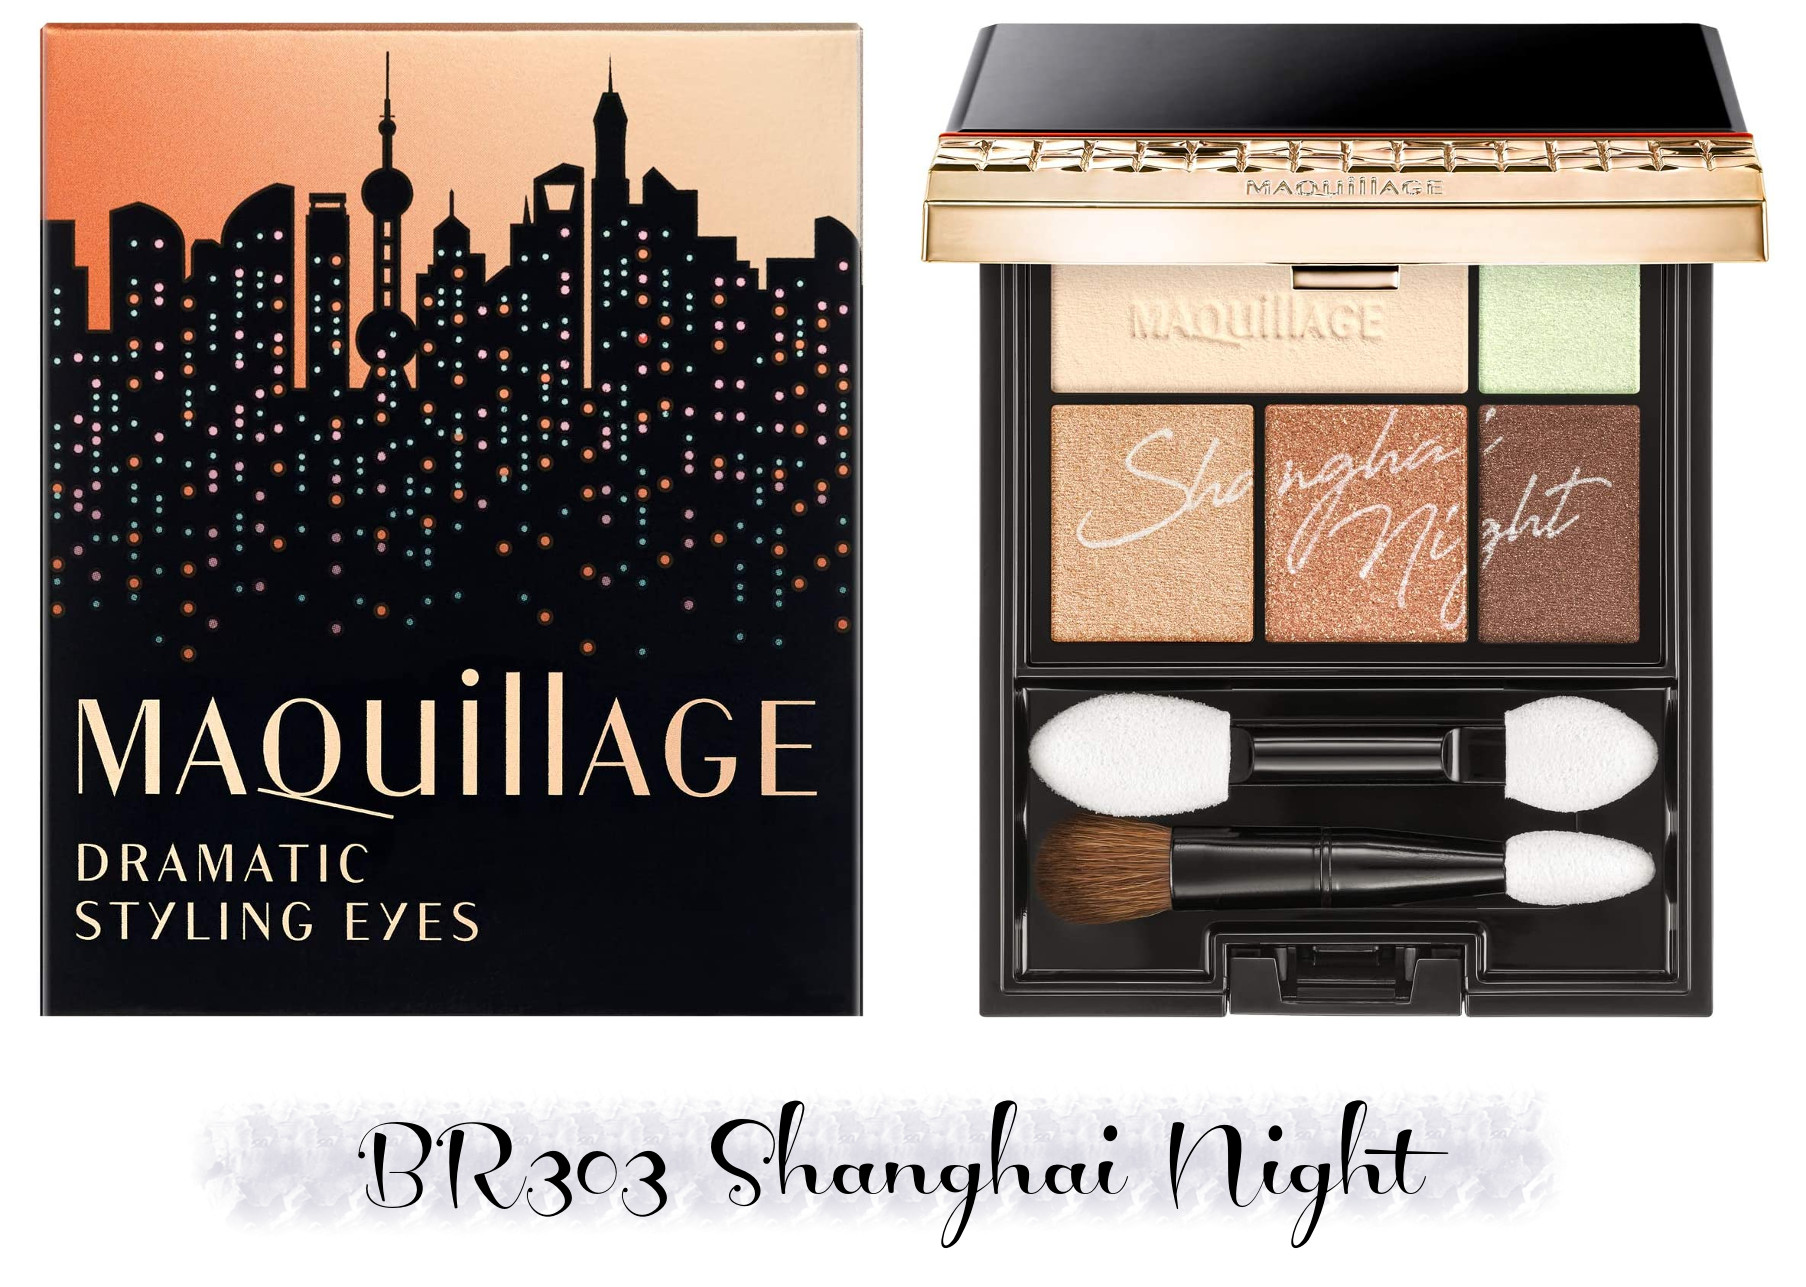 MAQuillAGE 2020 Holiday Collection Aurora Illumination Colors Dramatic Styling Eyes BR303 Shanghai Night